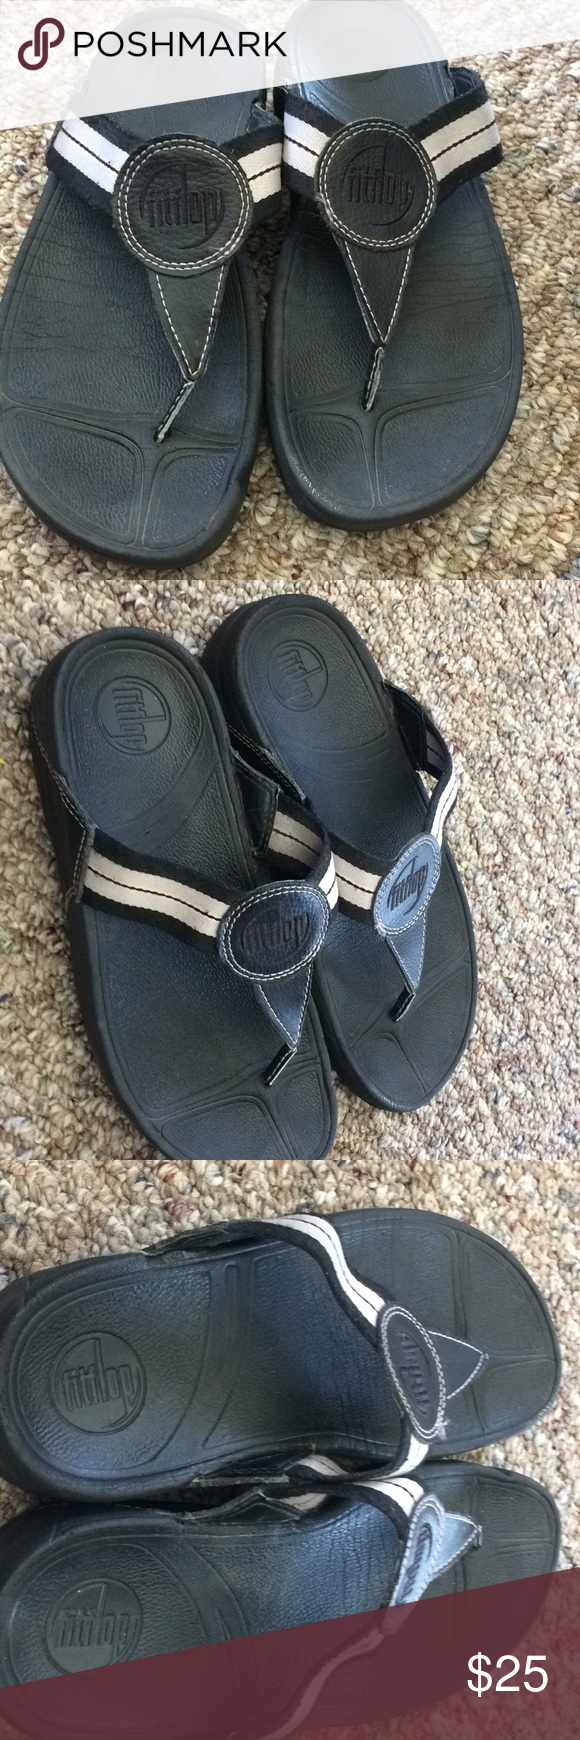 024a1e4d1b7bc Fitflop women s flip flops size 7 These are in great condition. Black with  white stripes on the straps with light pink accents. They are size 7.